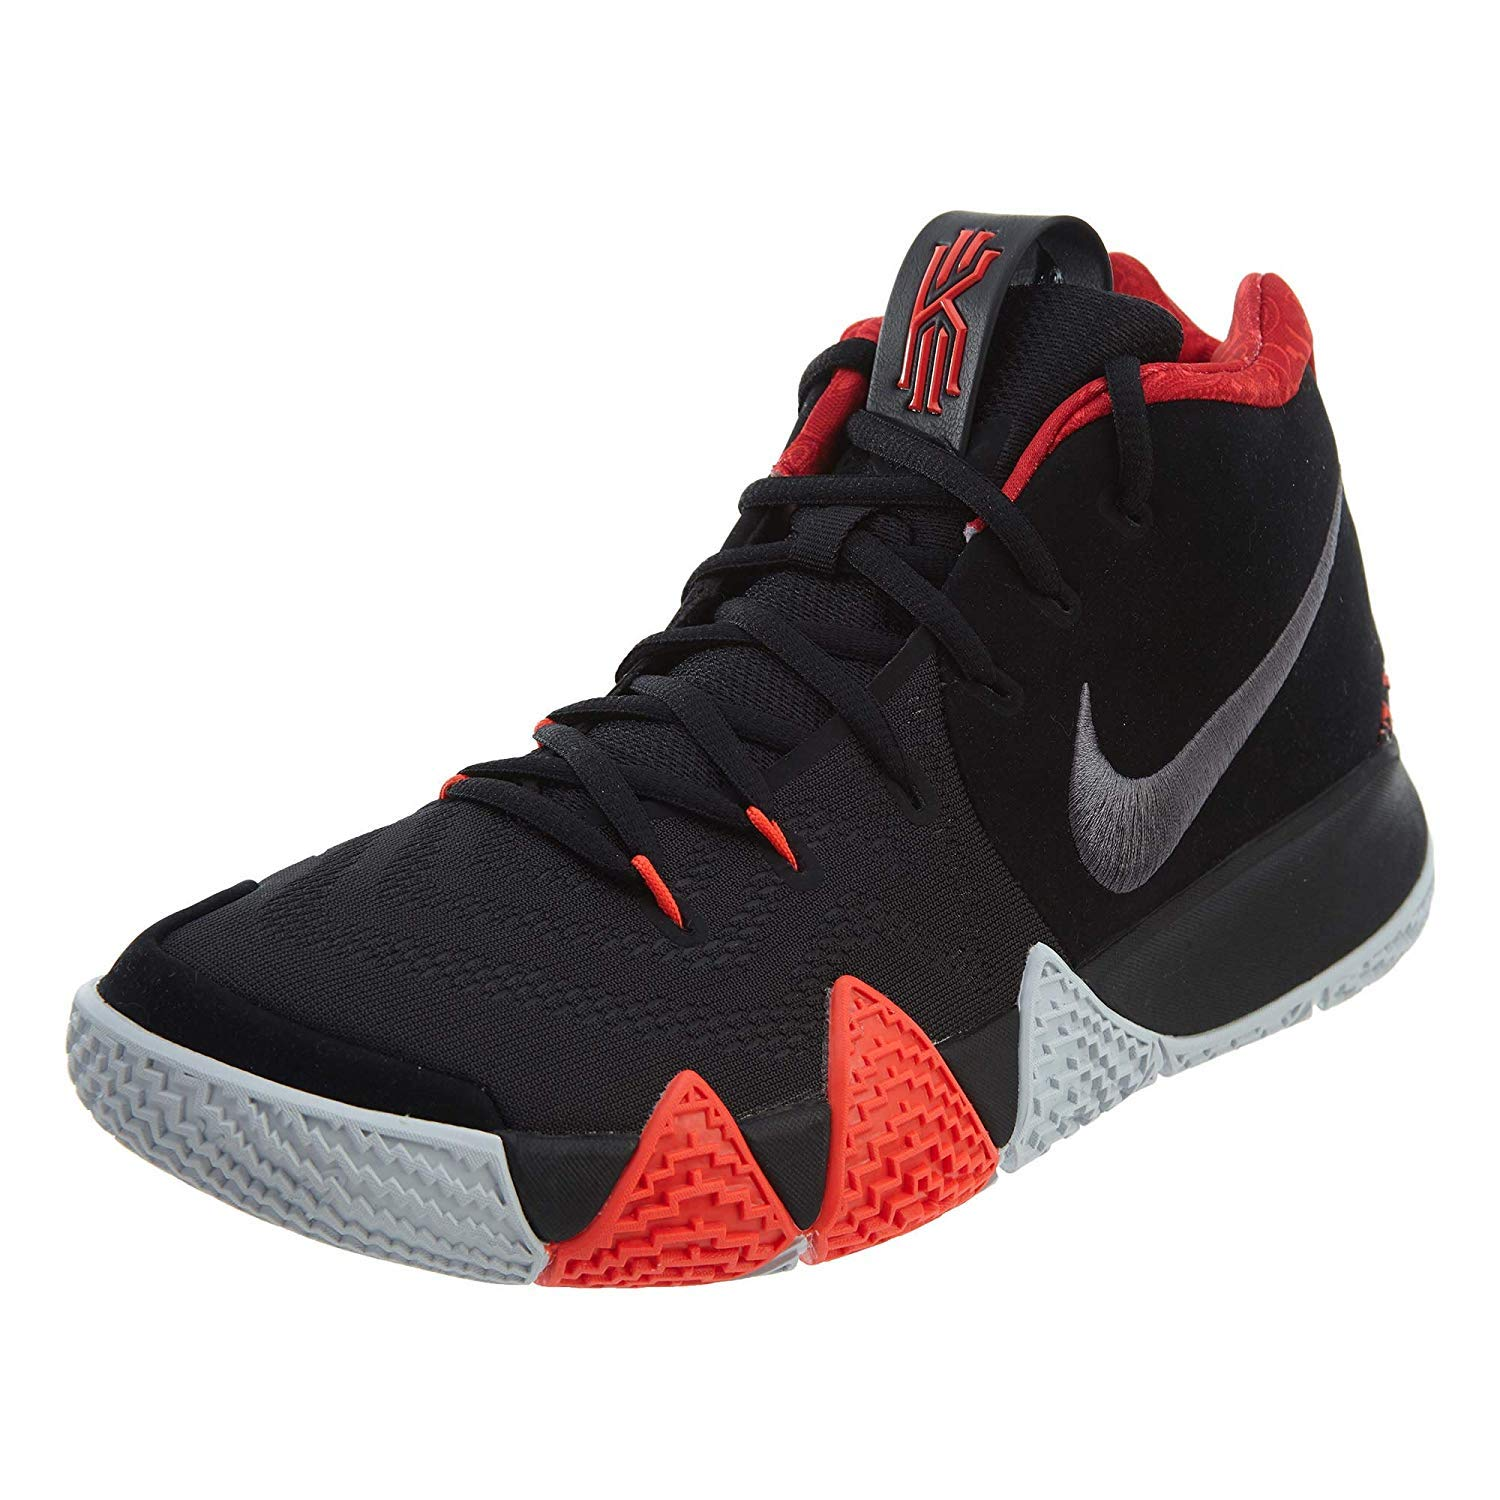 wholesale dealer 7dc6c e7850 Amazon.com   Nike Men s Kyrie 4 Basketball Shoes (11, Black Red Grey)    Basketball